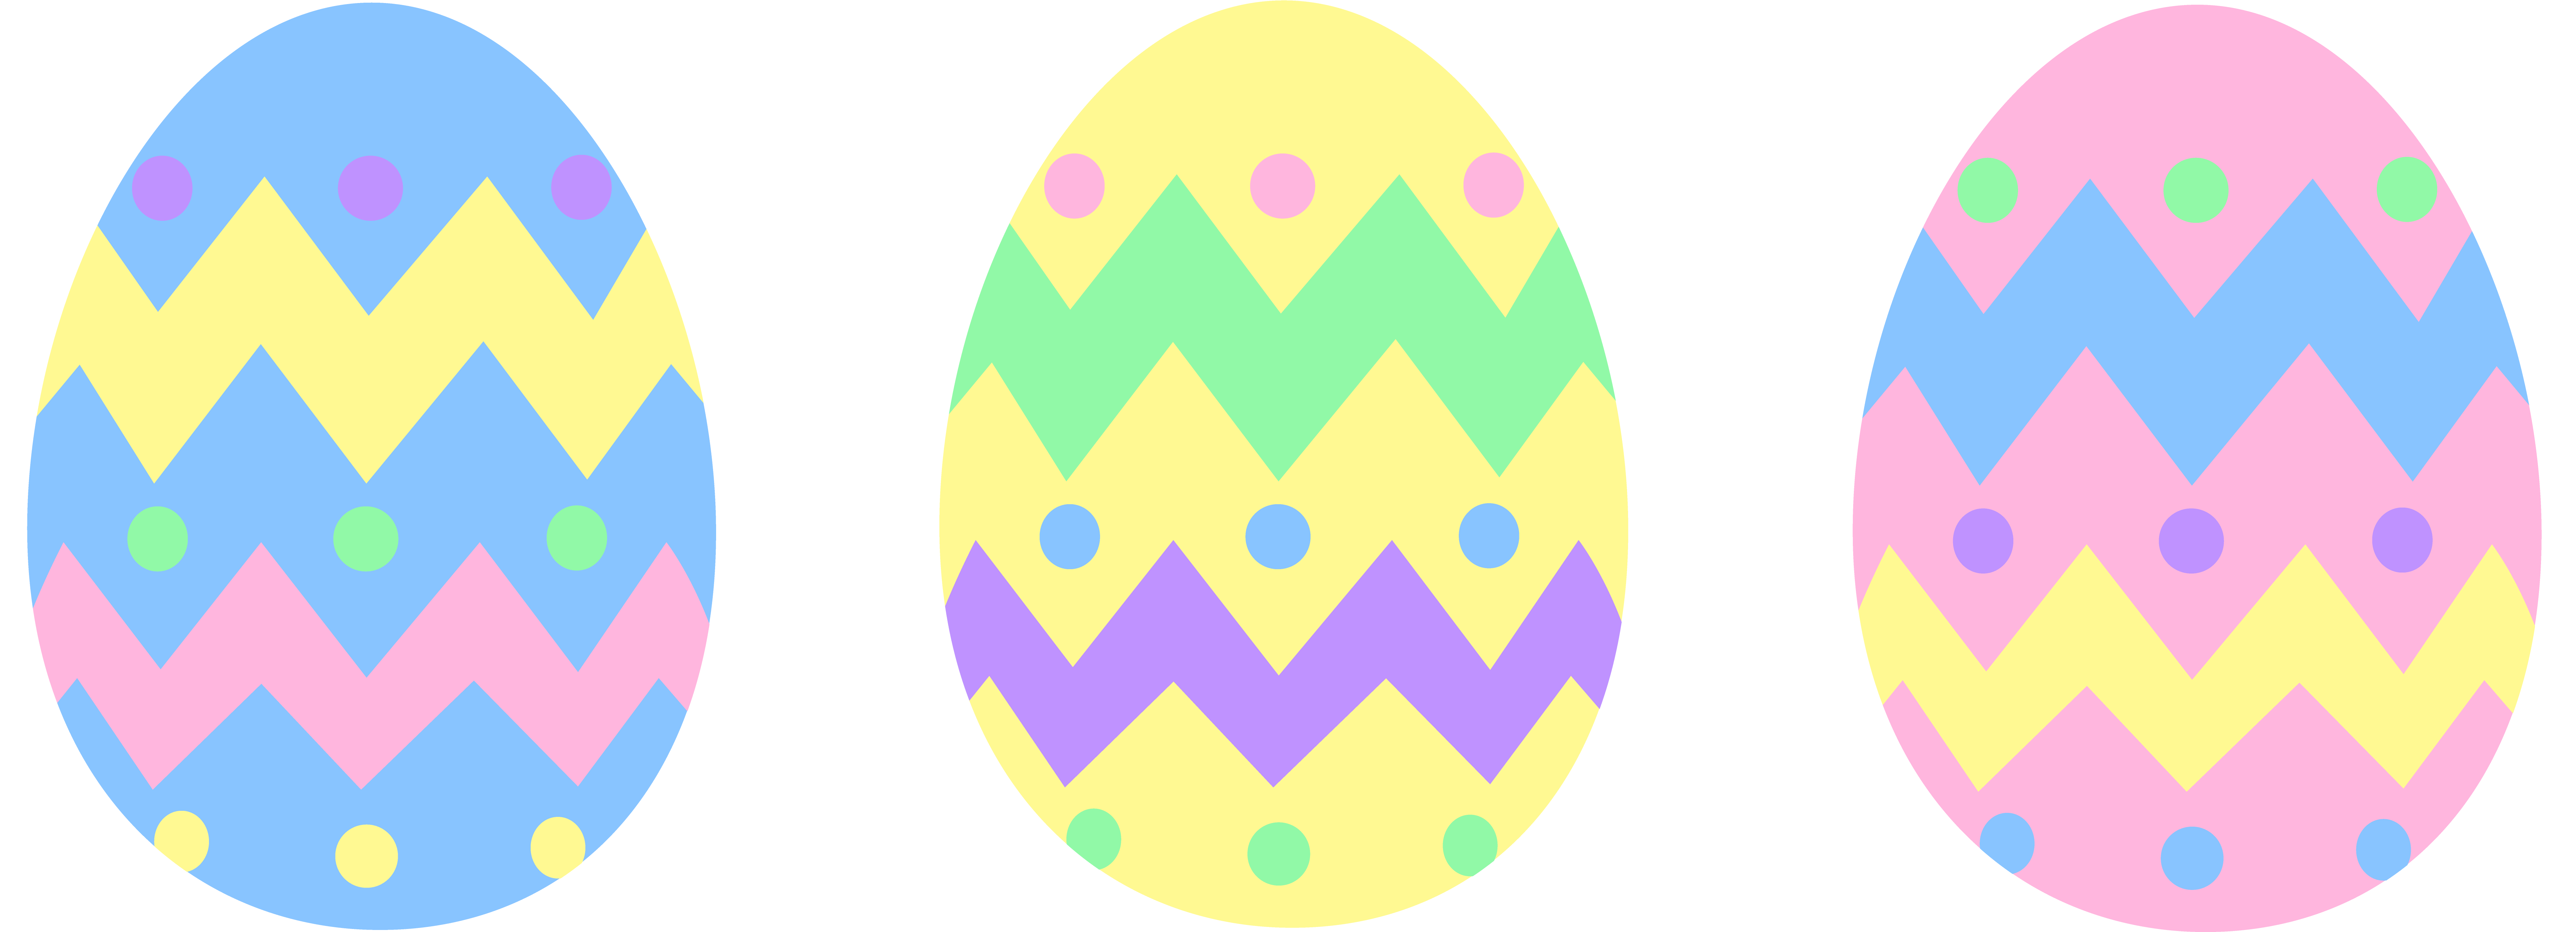 7655x2769 Three Pastel Colored Easter Eggs